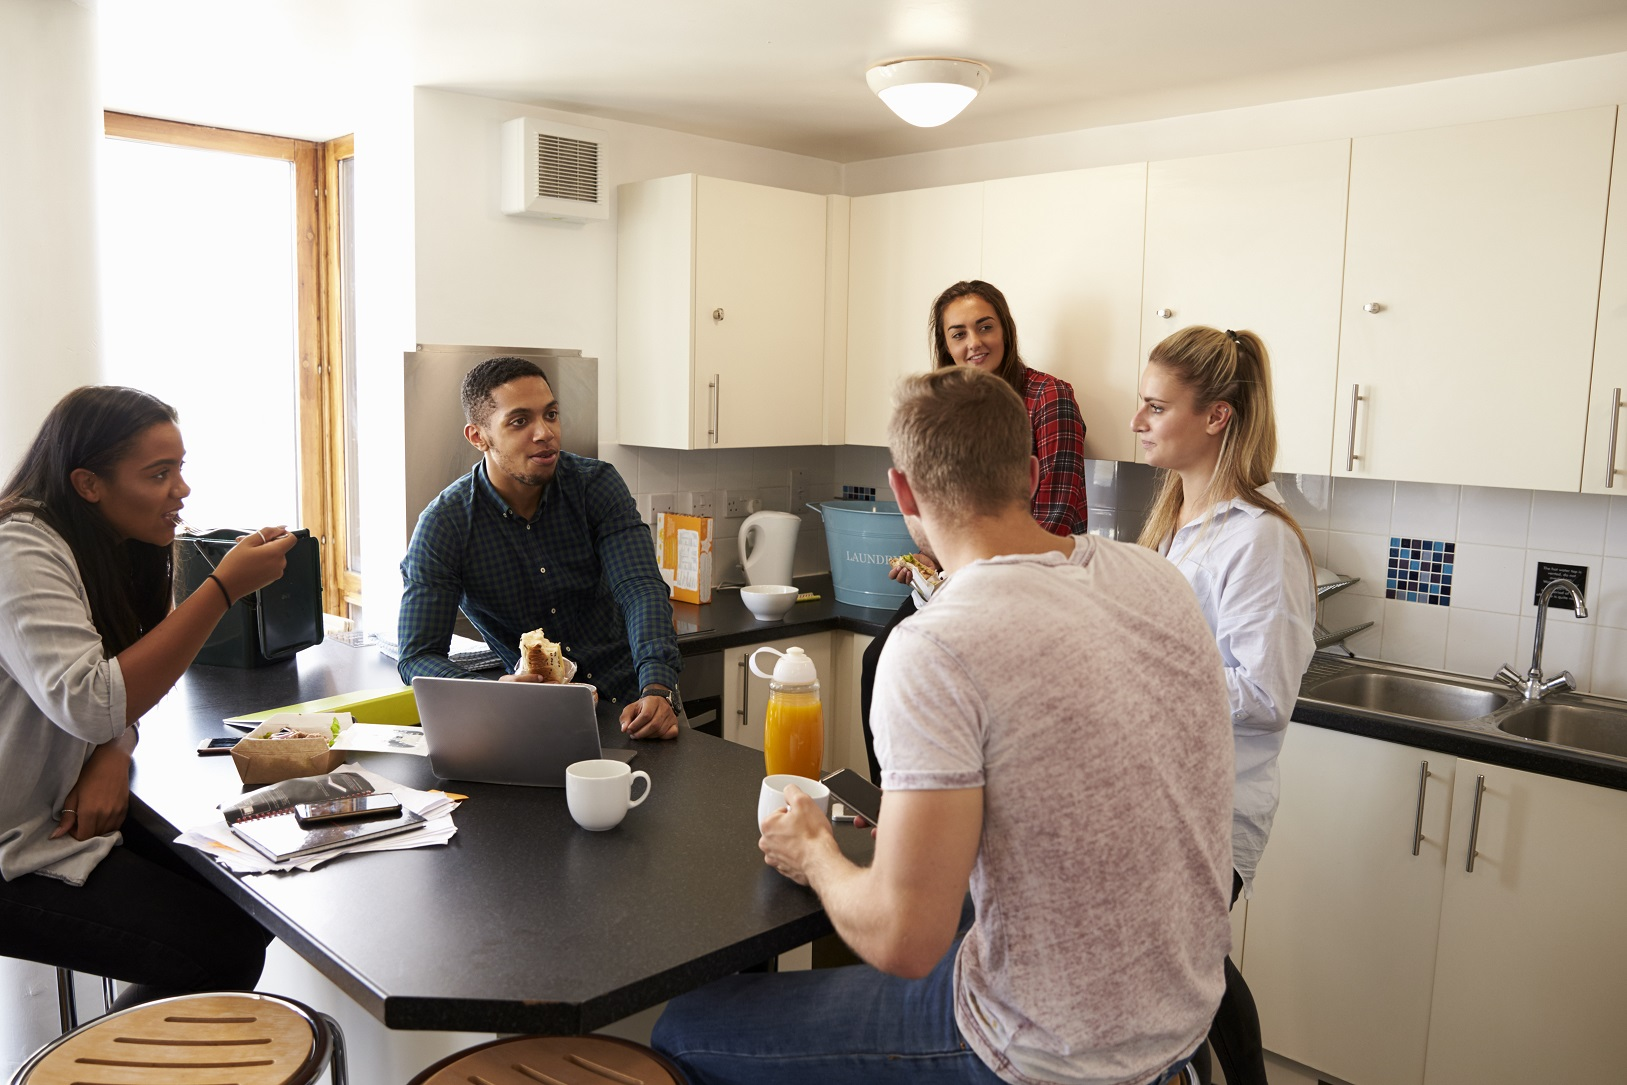 Students Relaxing In Kitchen Of Shared Accommodation in Coventry